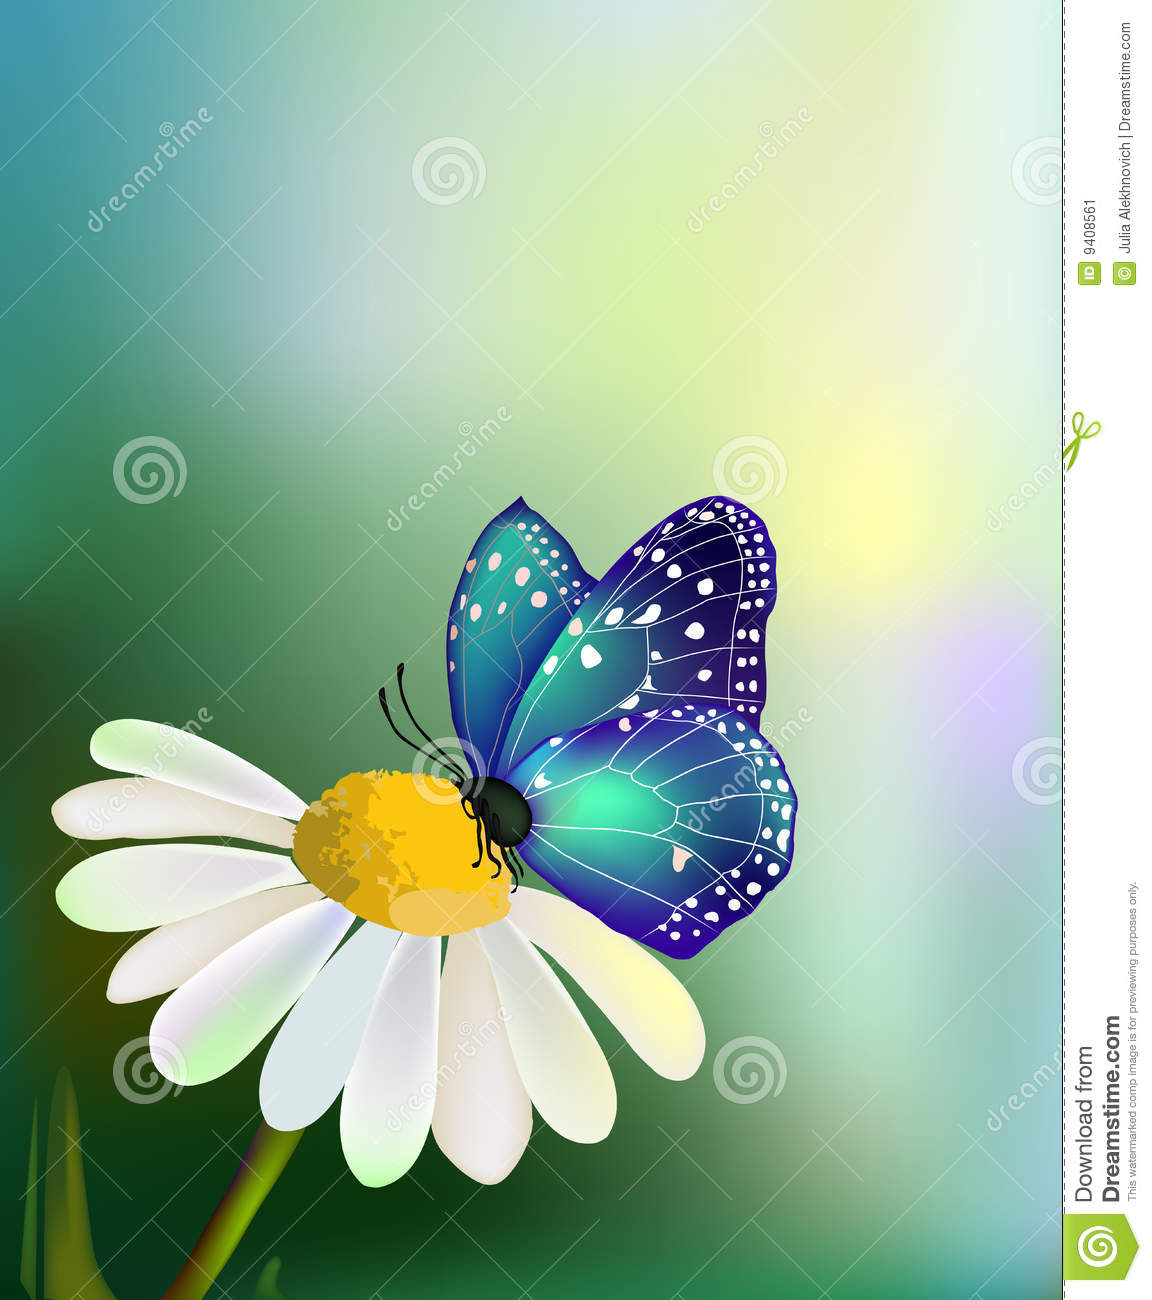 Vector Blue Butterfly On The Daisy-flower Stock Image - Image: 9408561